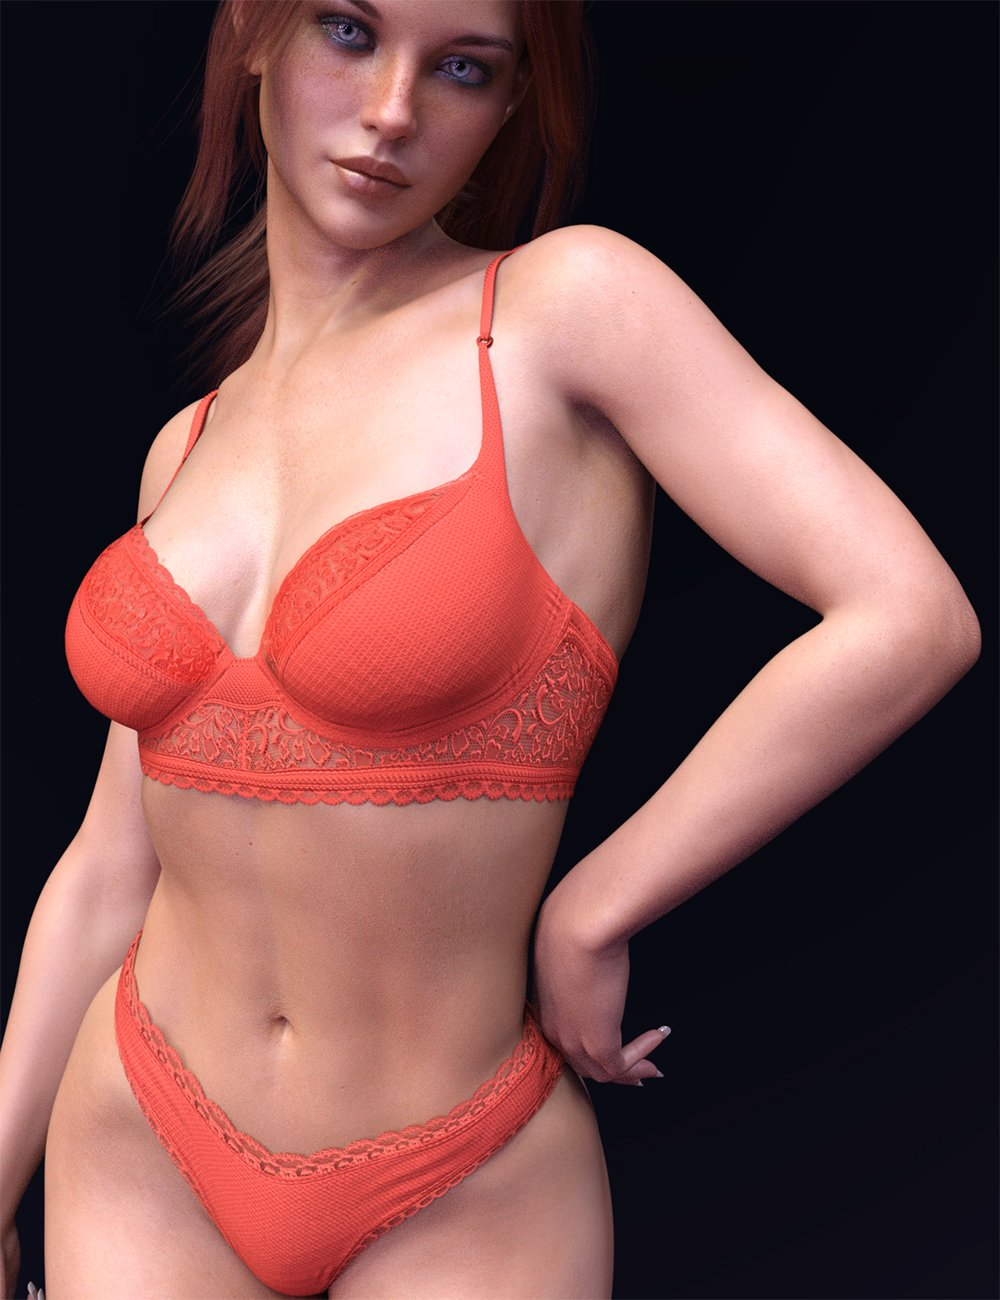 X-Fashion Private Lingerie Set For Genesis 8 and 8.1 Females by: xtrart-3d, 3D Models by Daz 3D